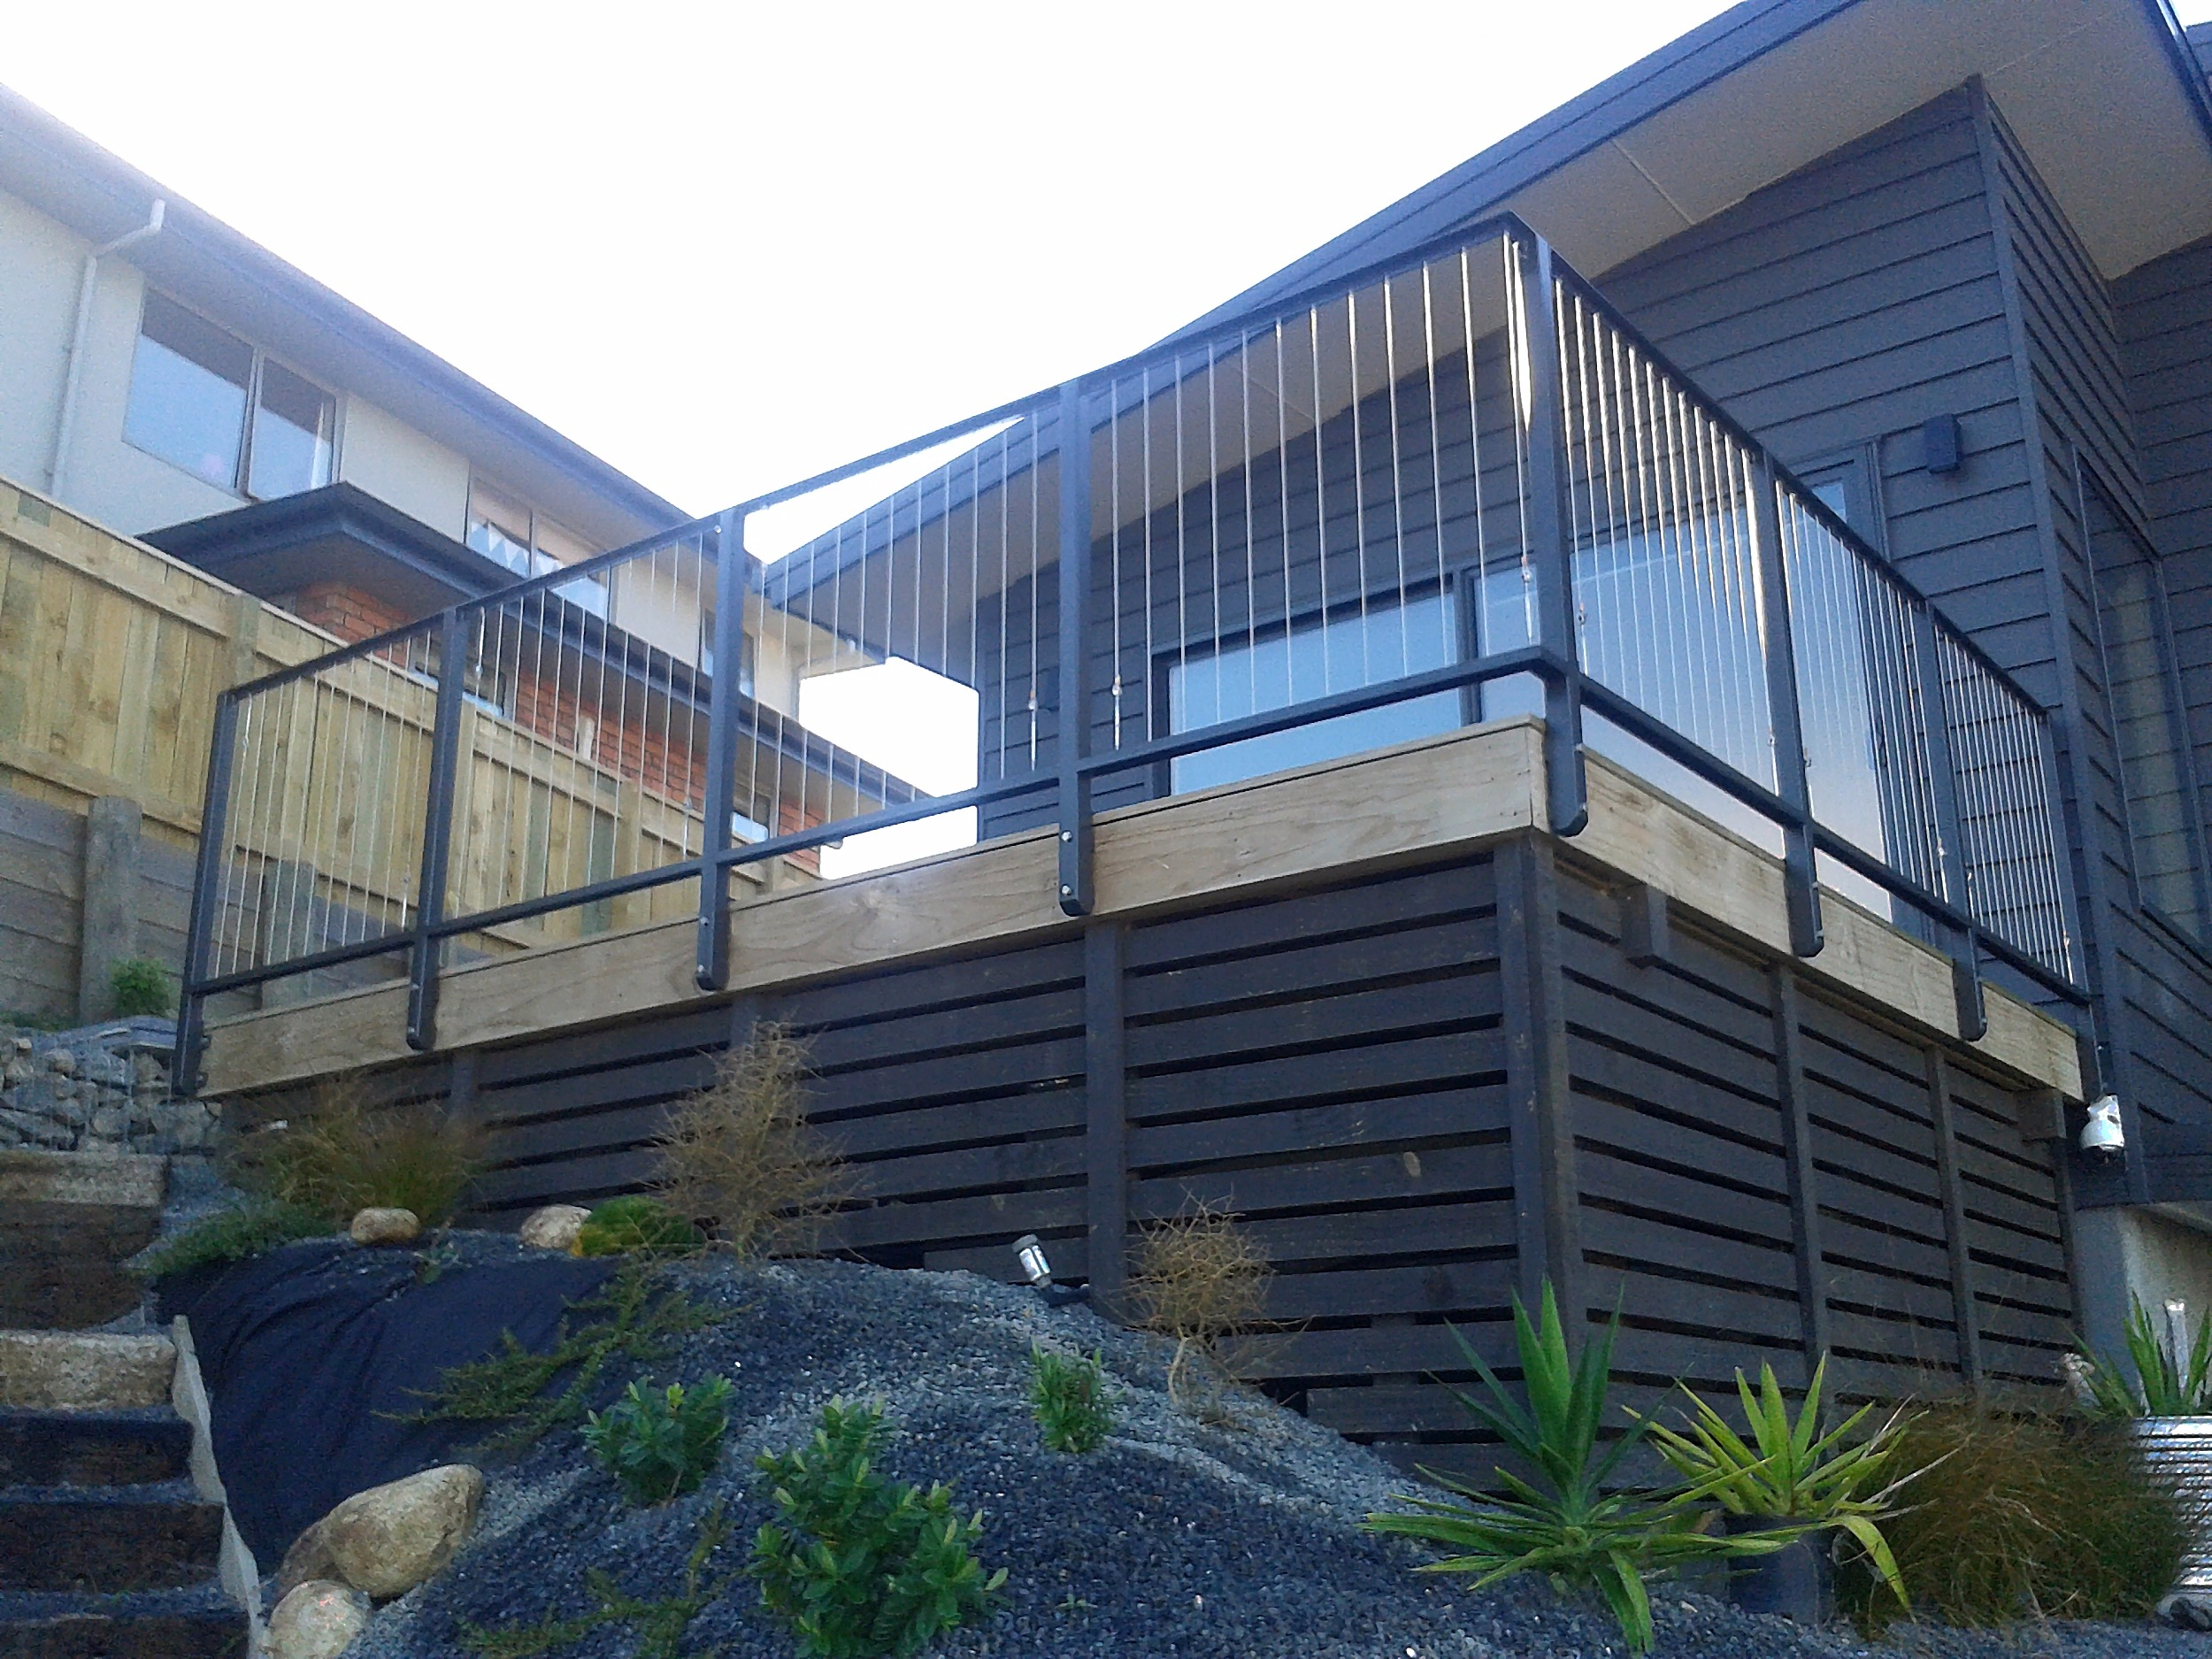 Stainless wire rope balustrade